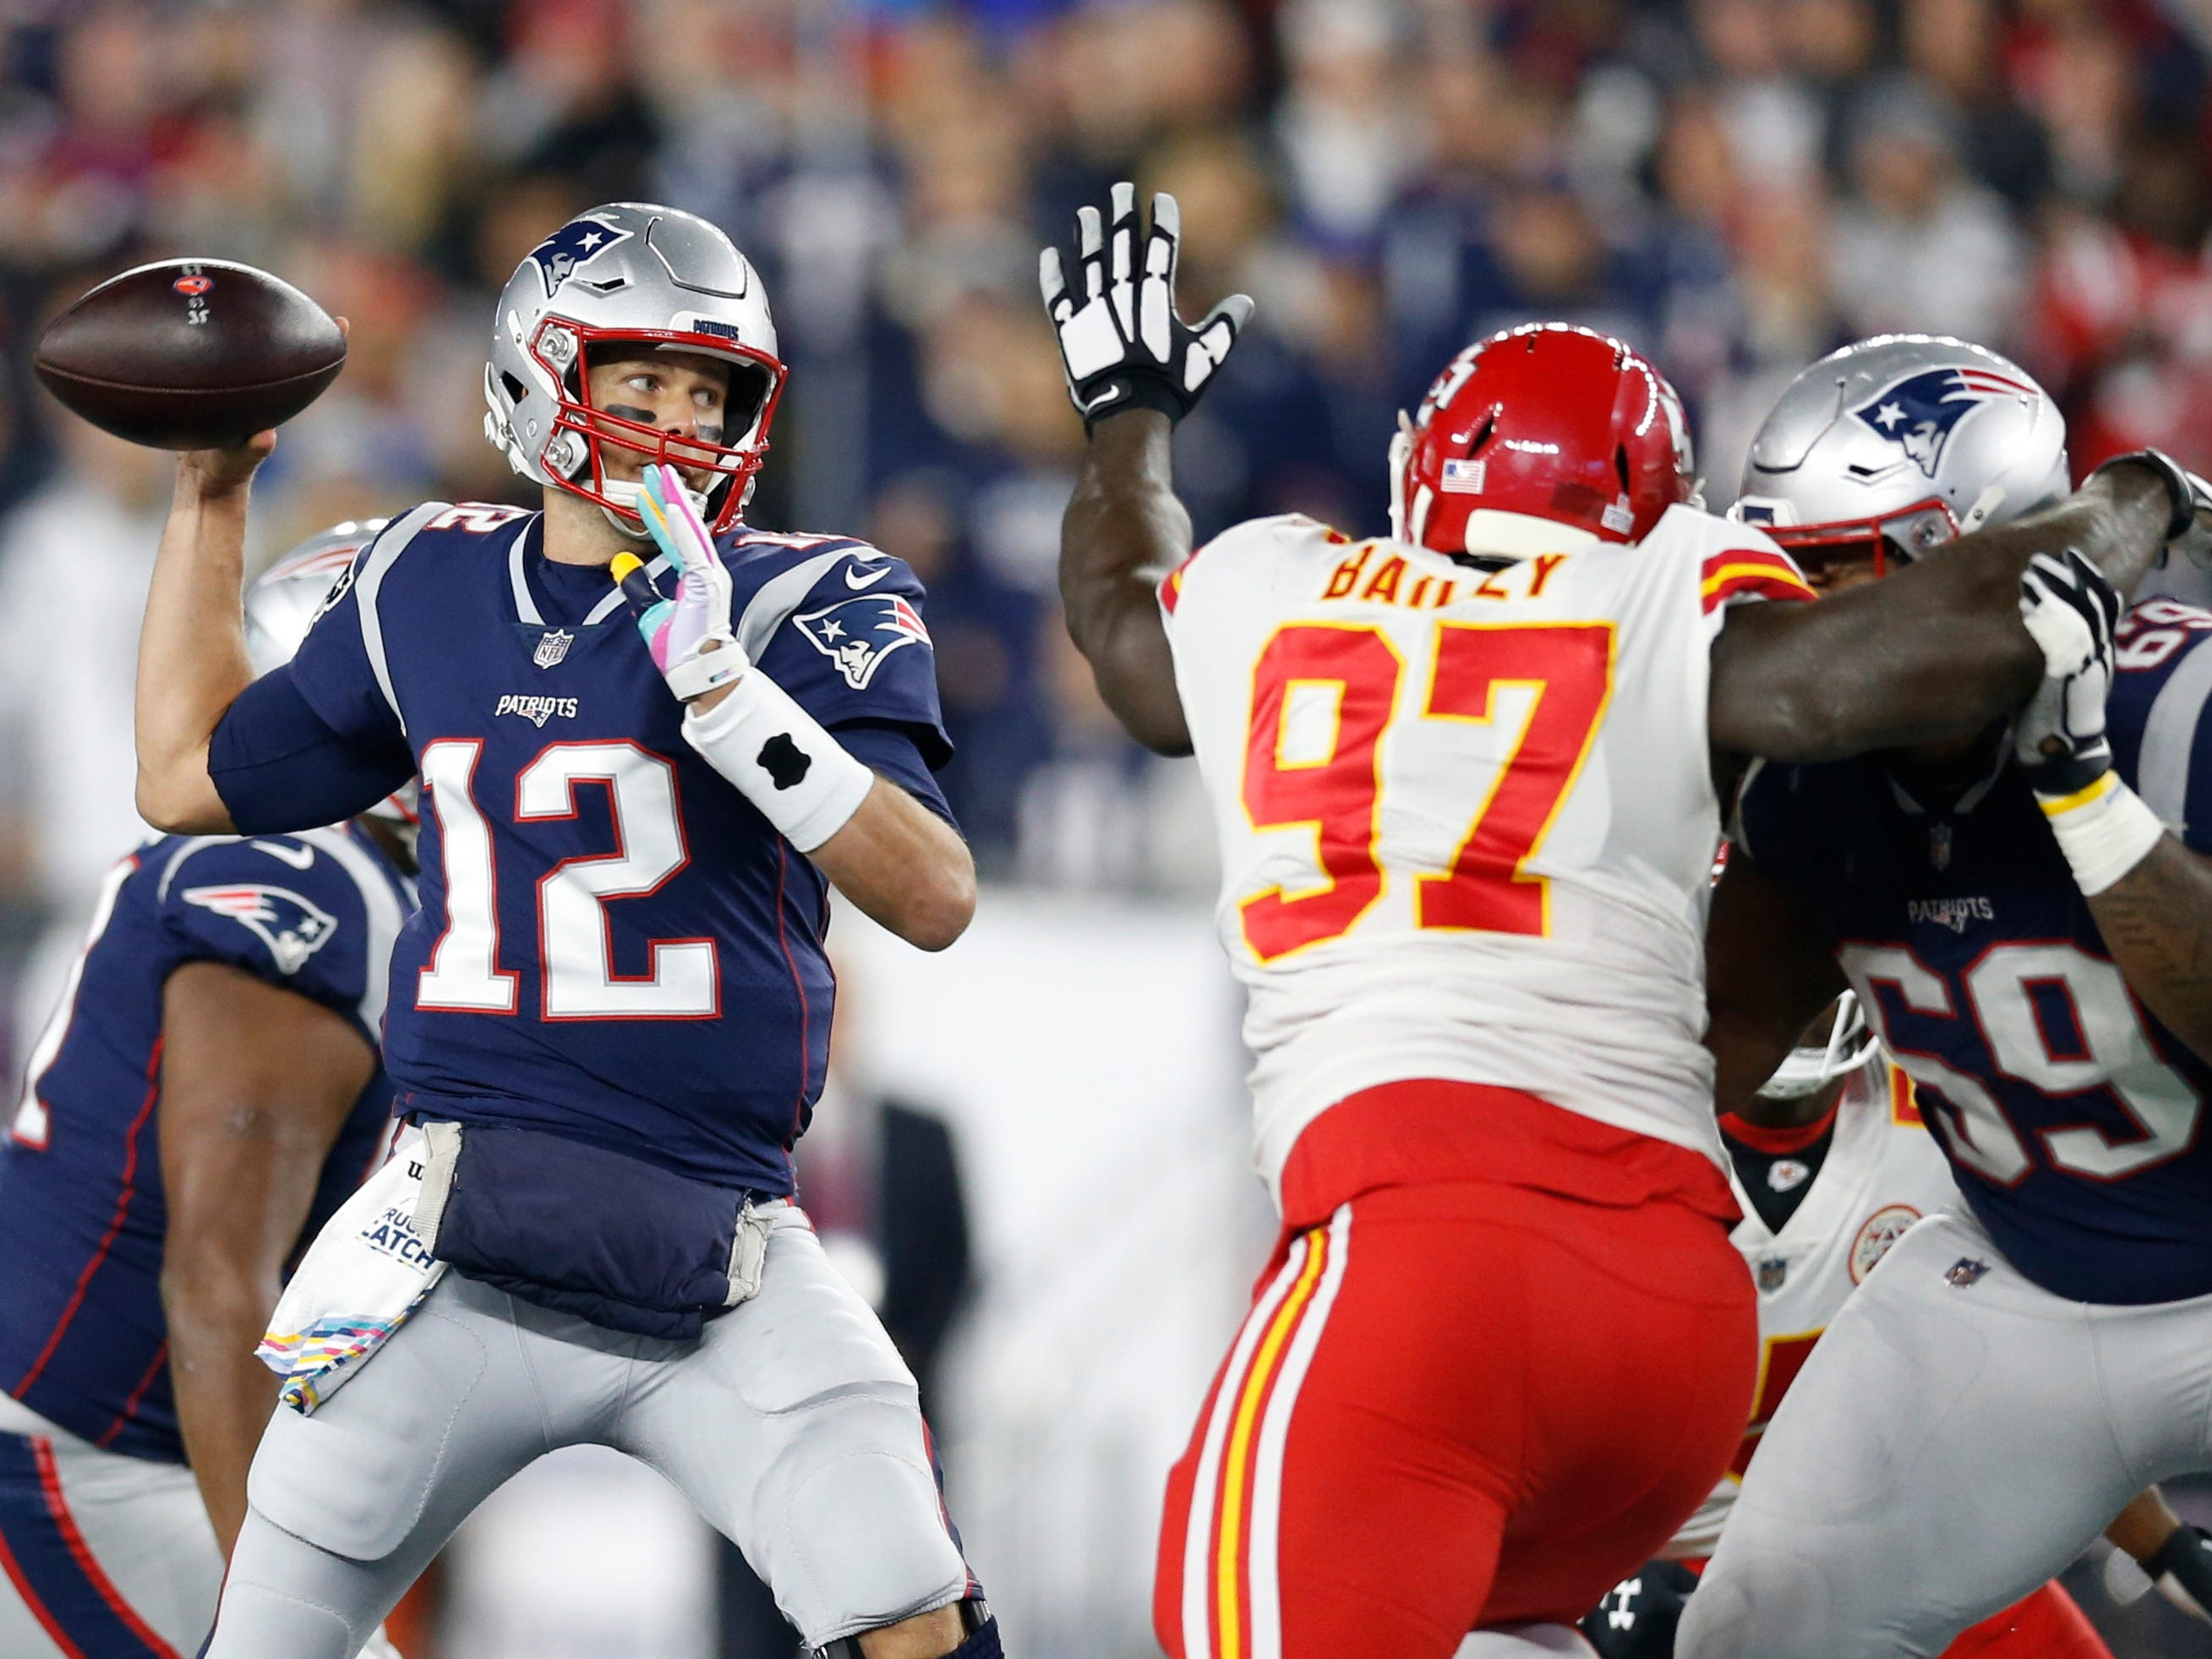 New England Patriots quarterback Tom Brady makes a pass while pressured by Kansas City Chiefs defensive end Allen Bailey during the first quarter at Gillette Stadium.